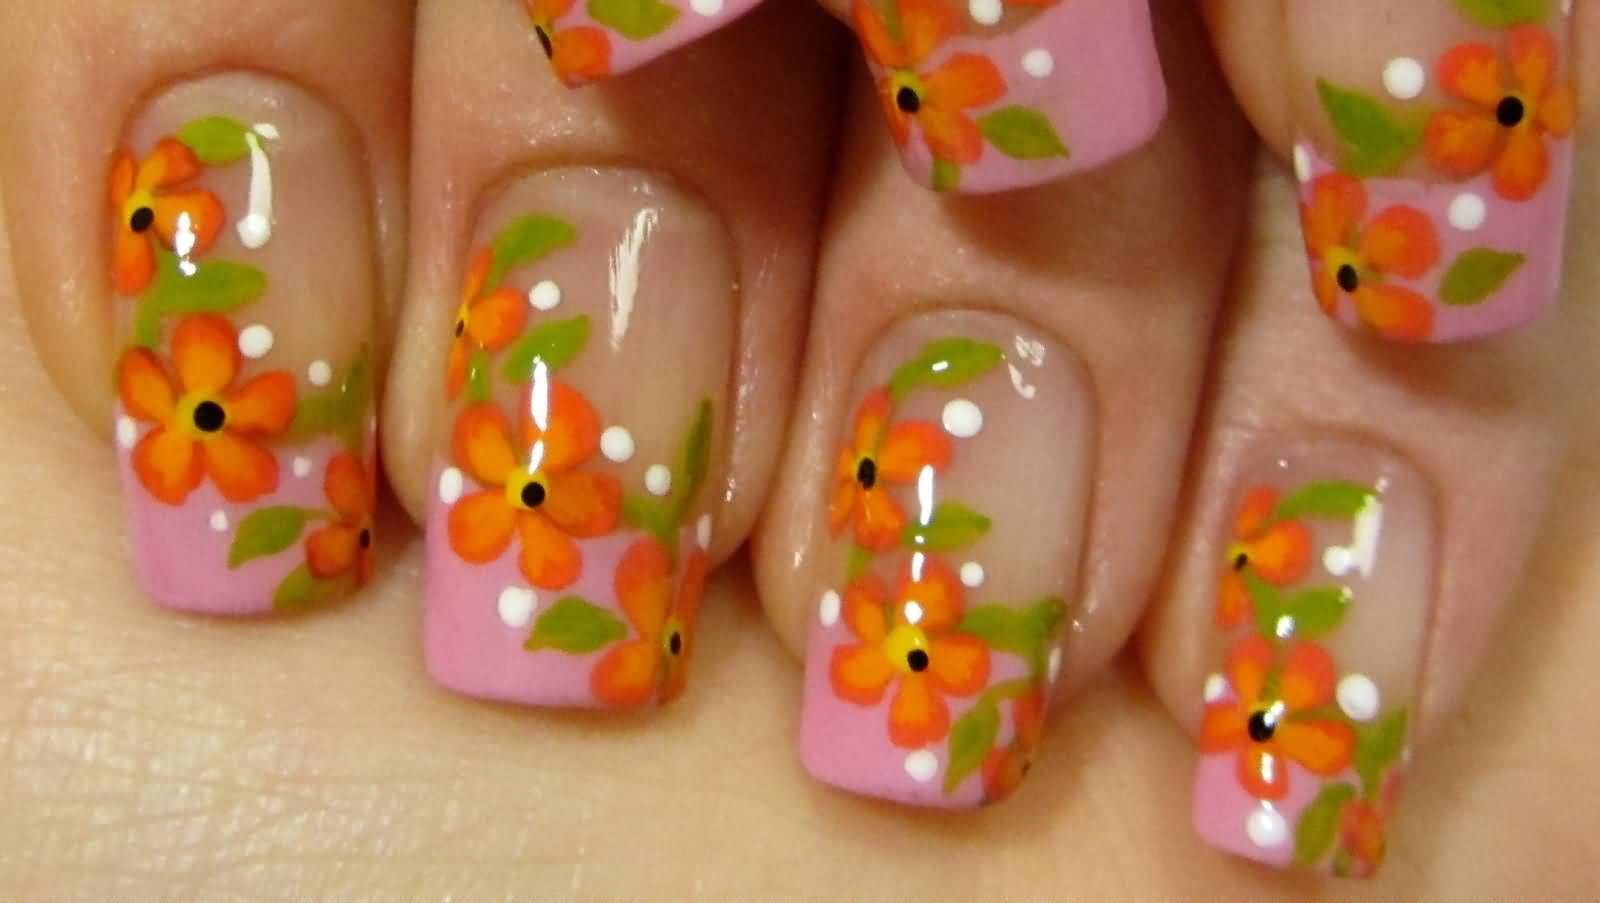 Pink French Tip With Red And Orange Flowers Vine Design Nail Art